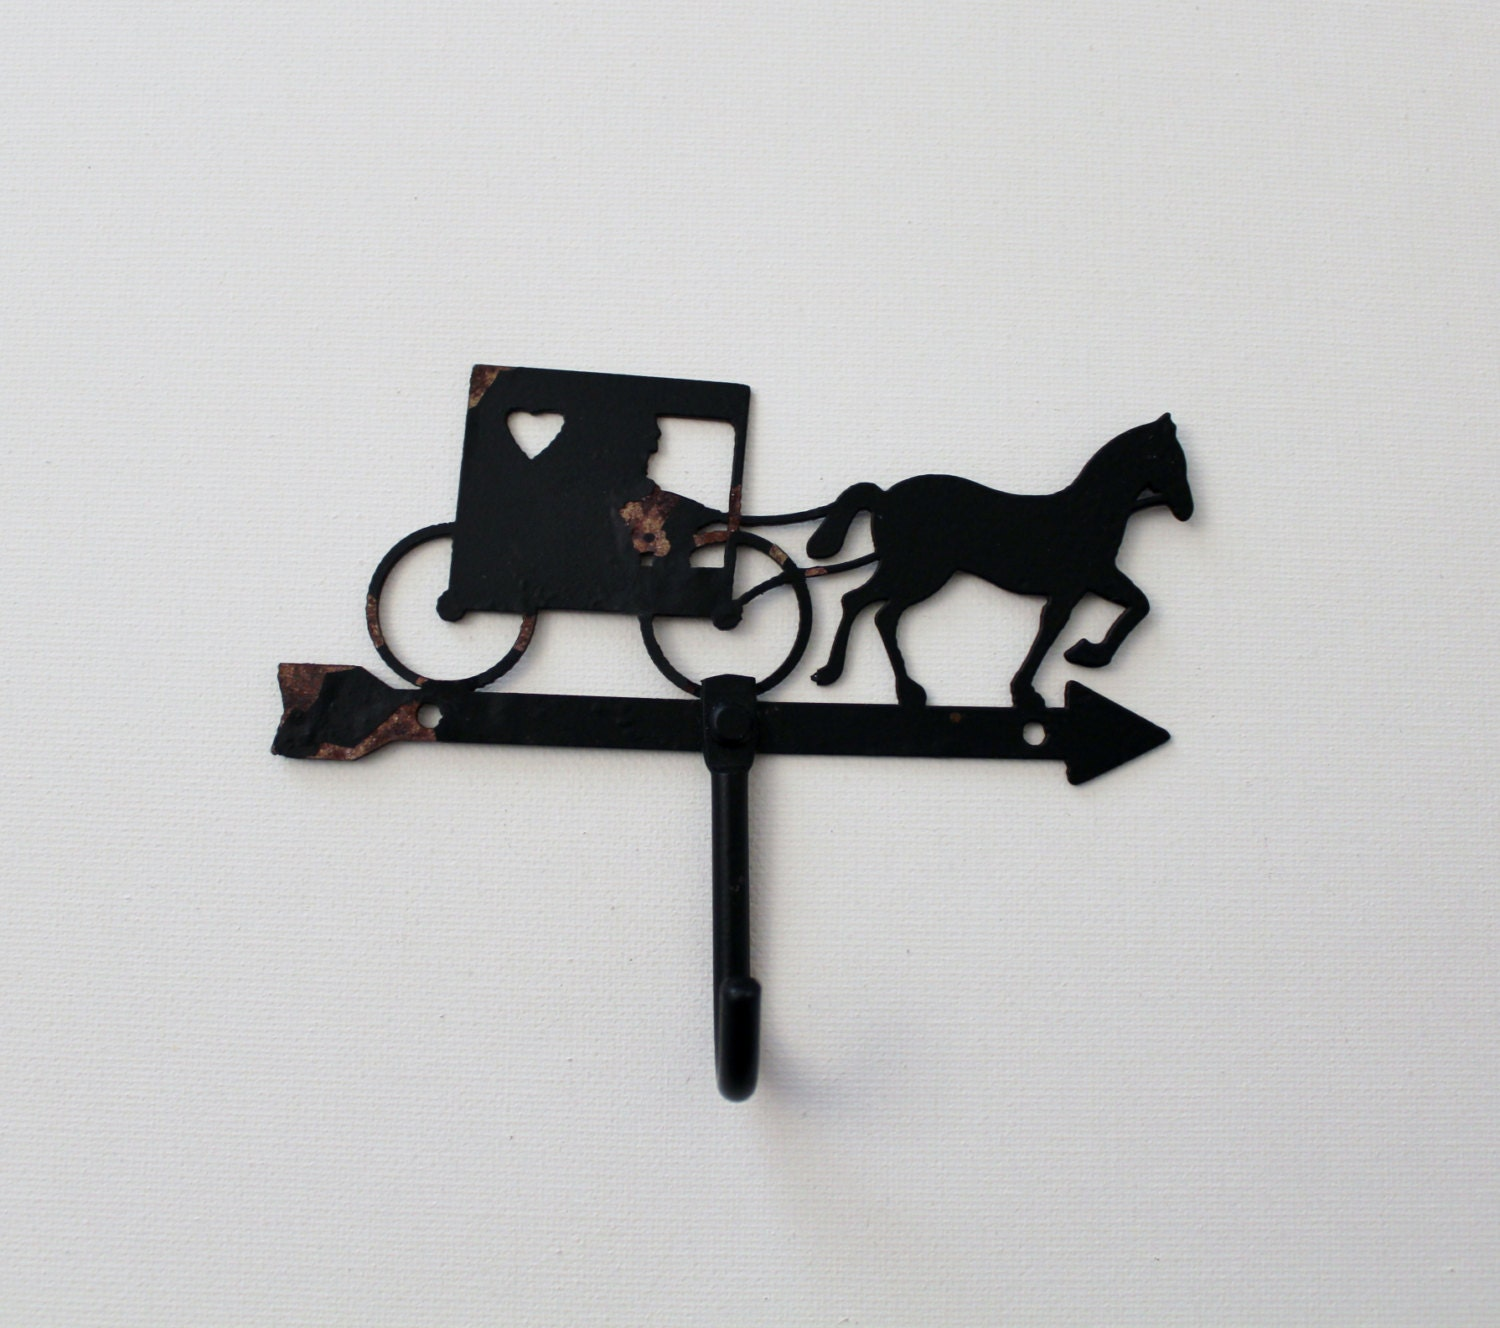 Amish Horse And Buggy Metal Hanging Wall Plaque | eBay |Metal Horse And Buggy Silhouette